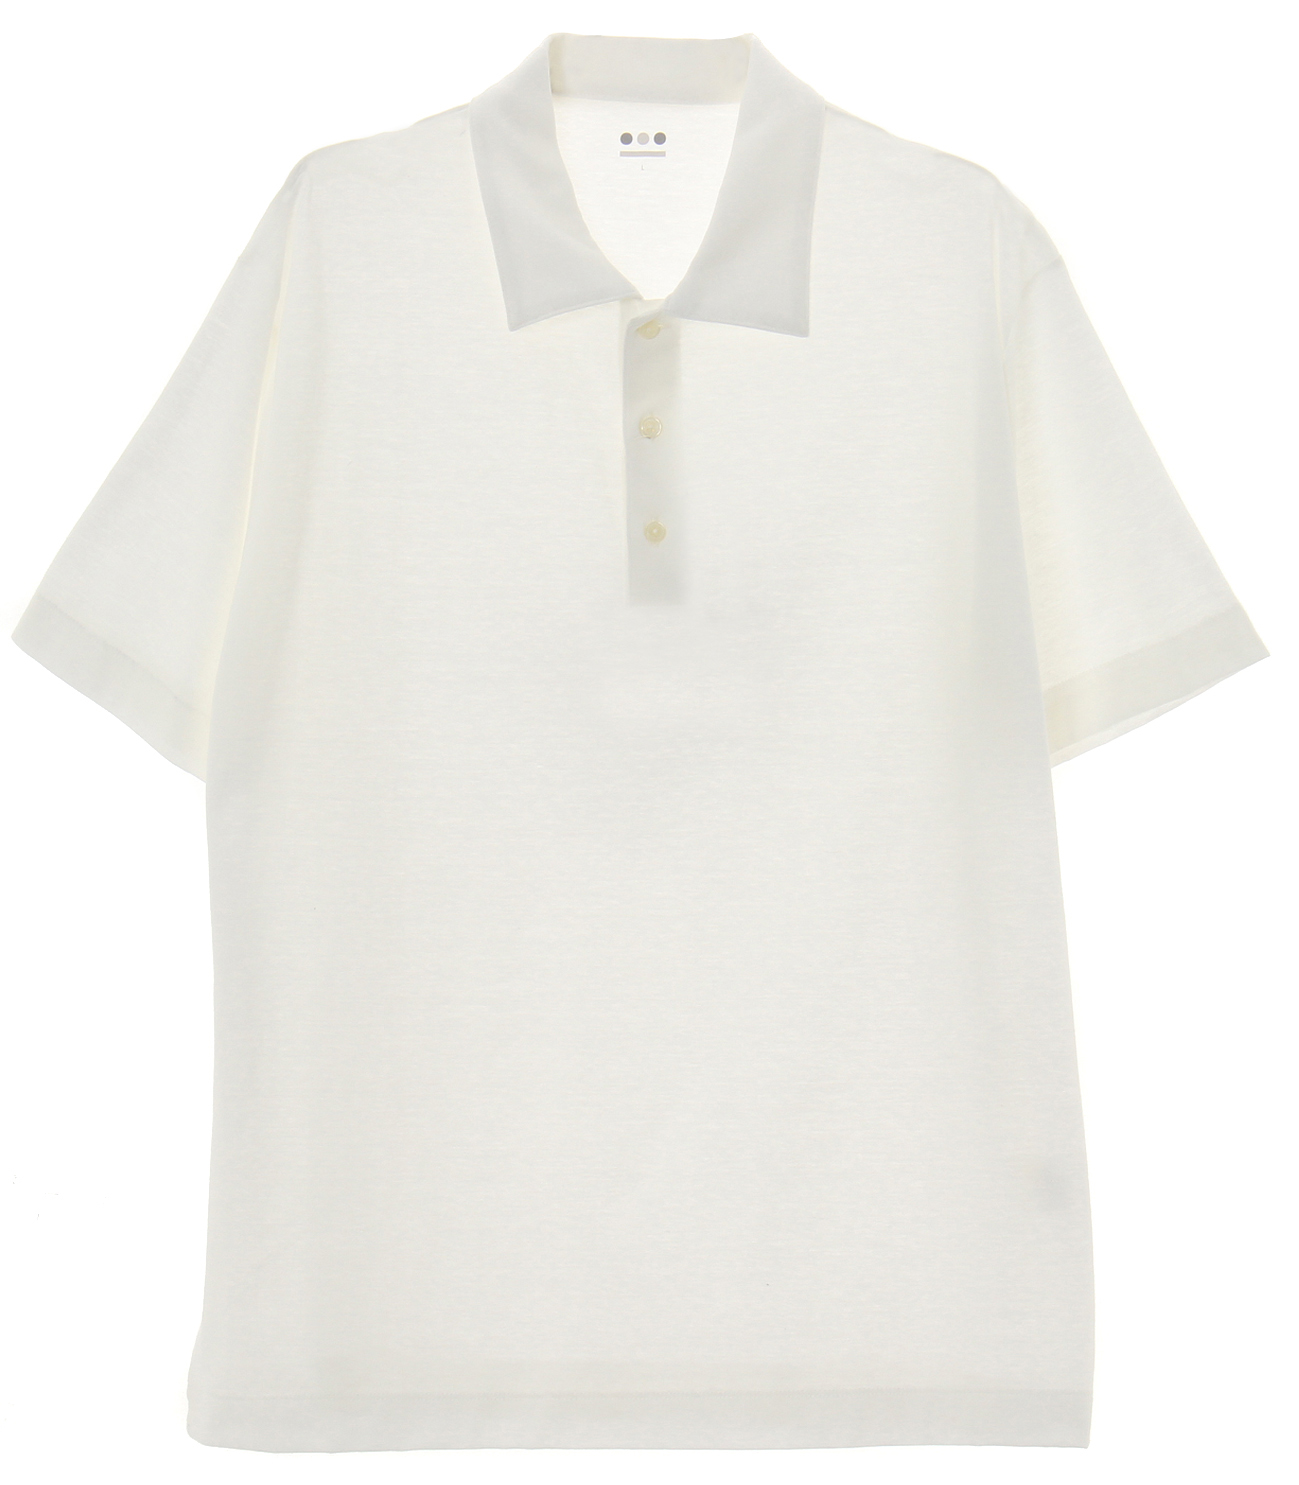 iced cotton s/s polo 詳細画像 ivory 1